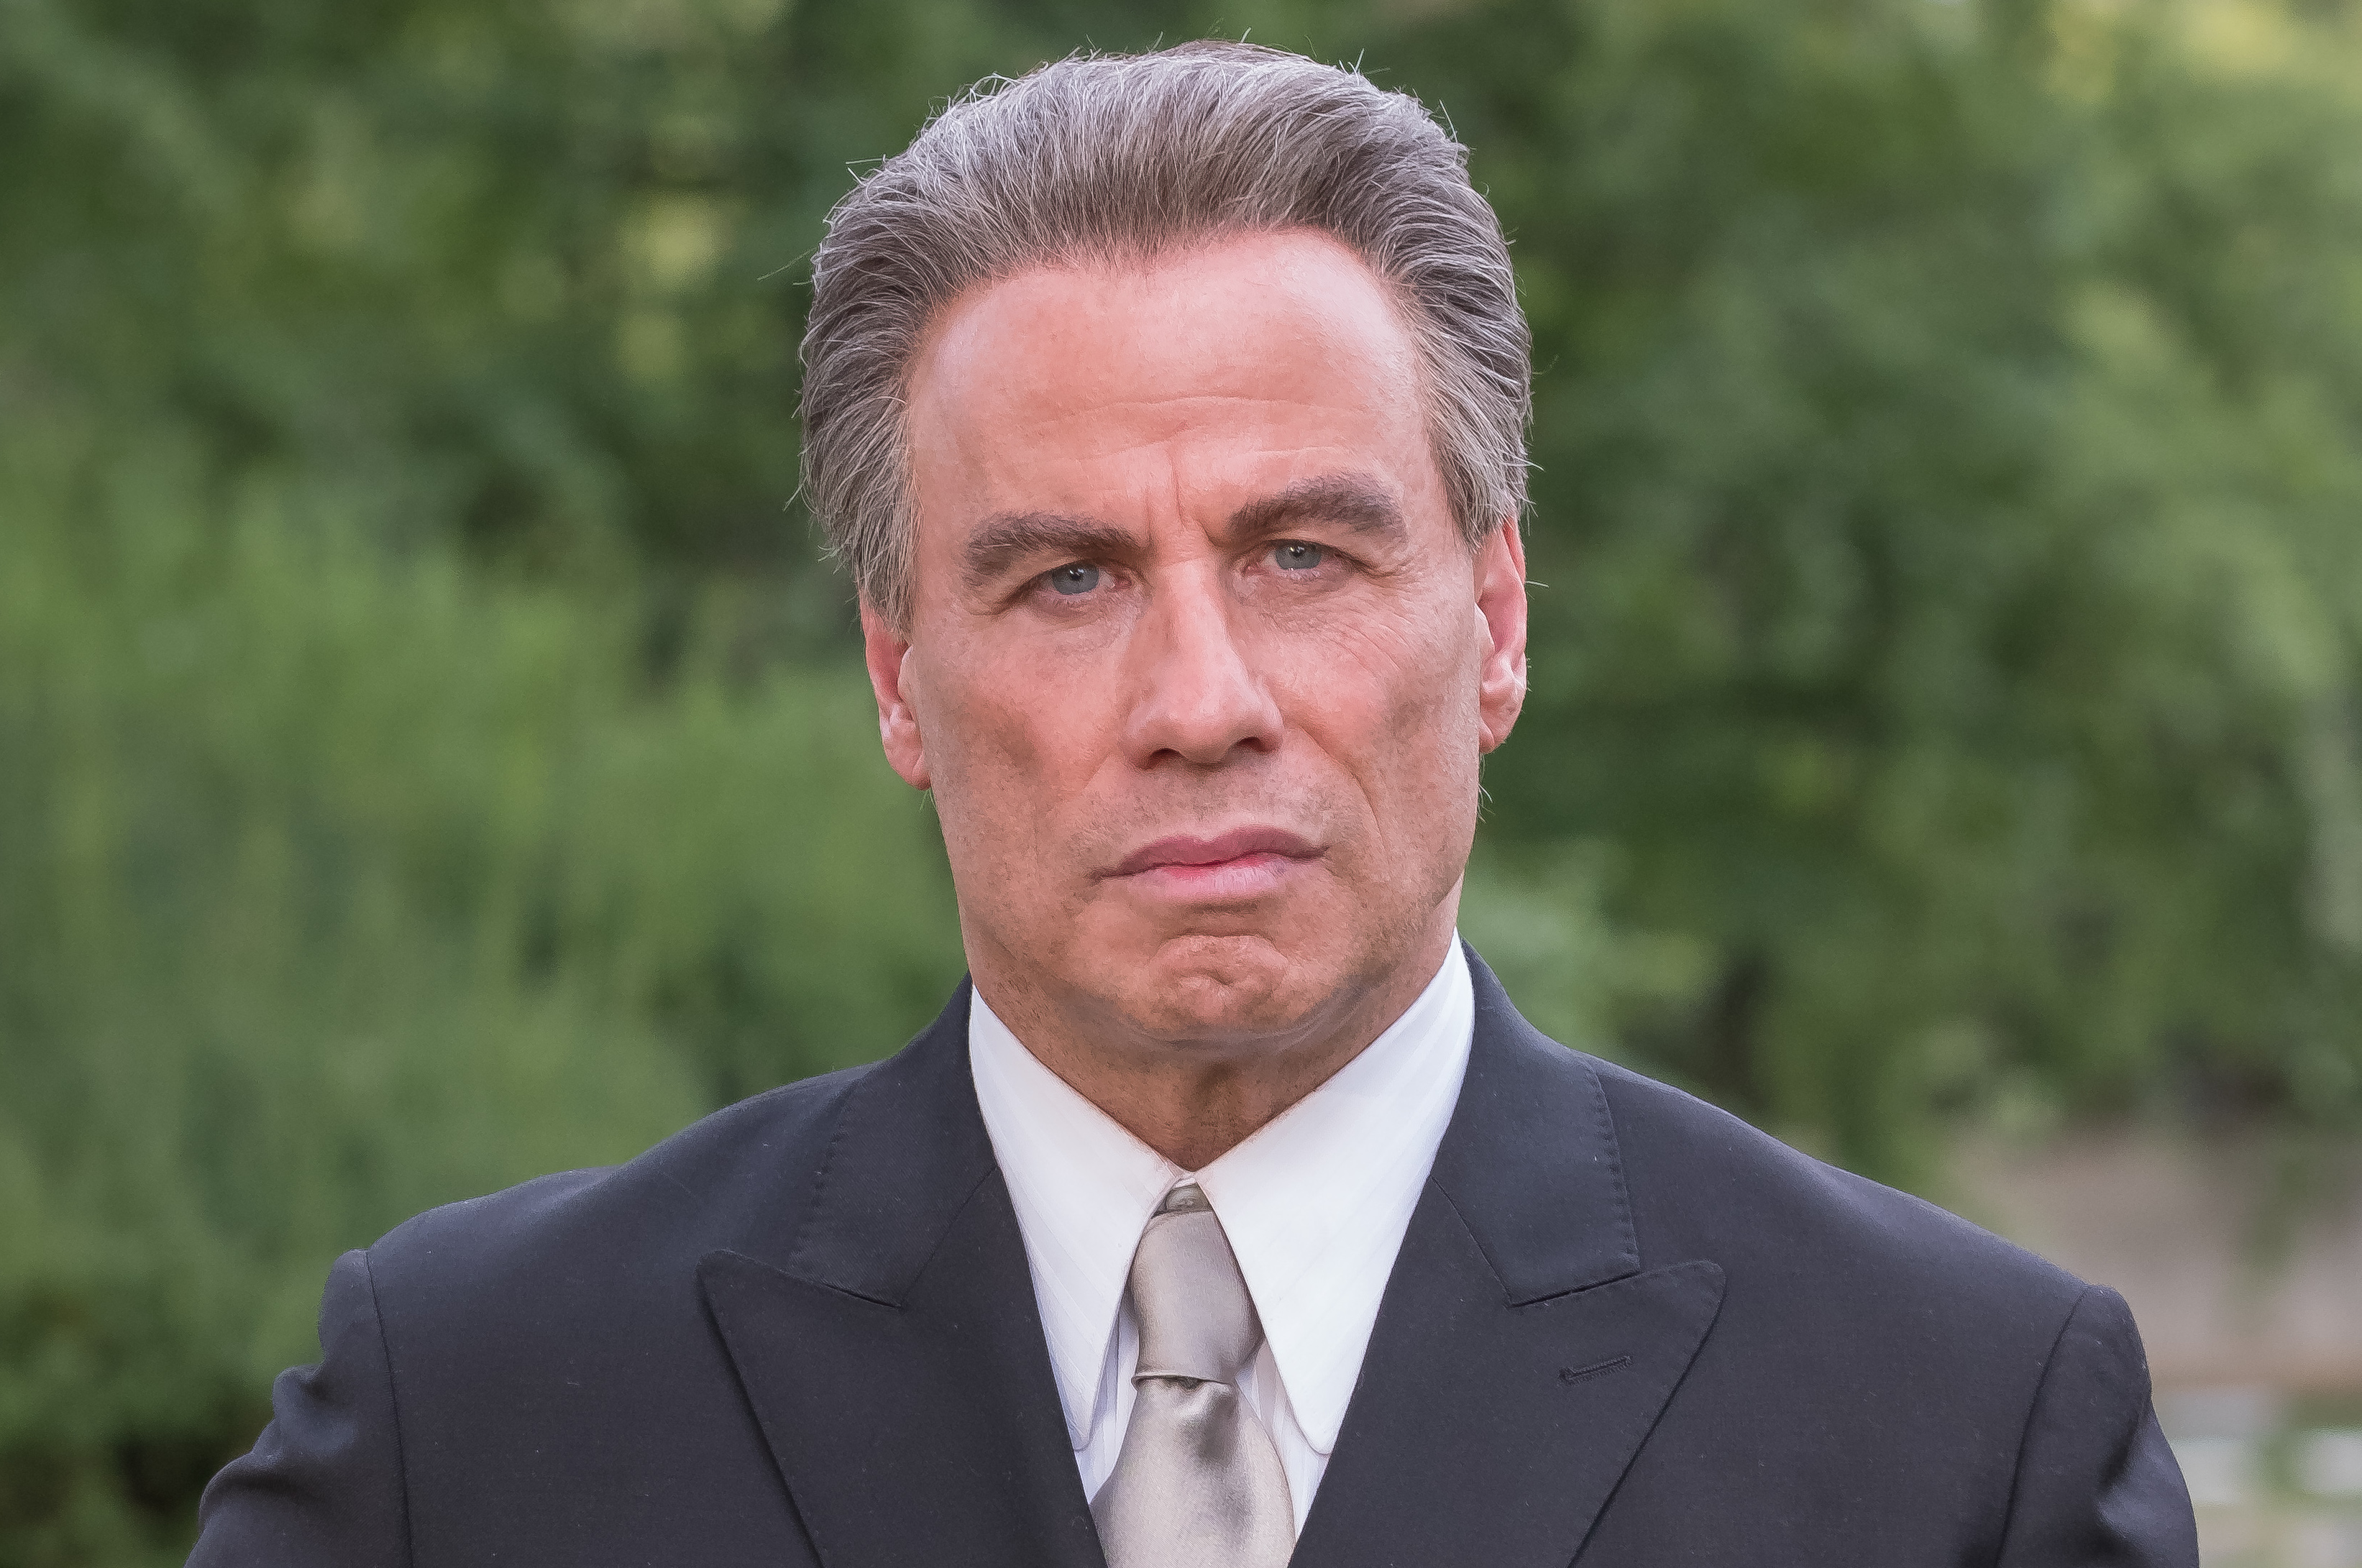 John Travolta's screen portrayal of crime boss Gotti takes a pelting